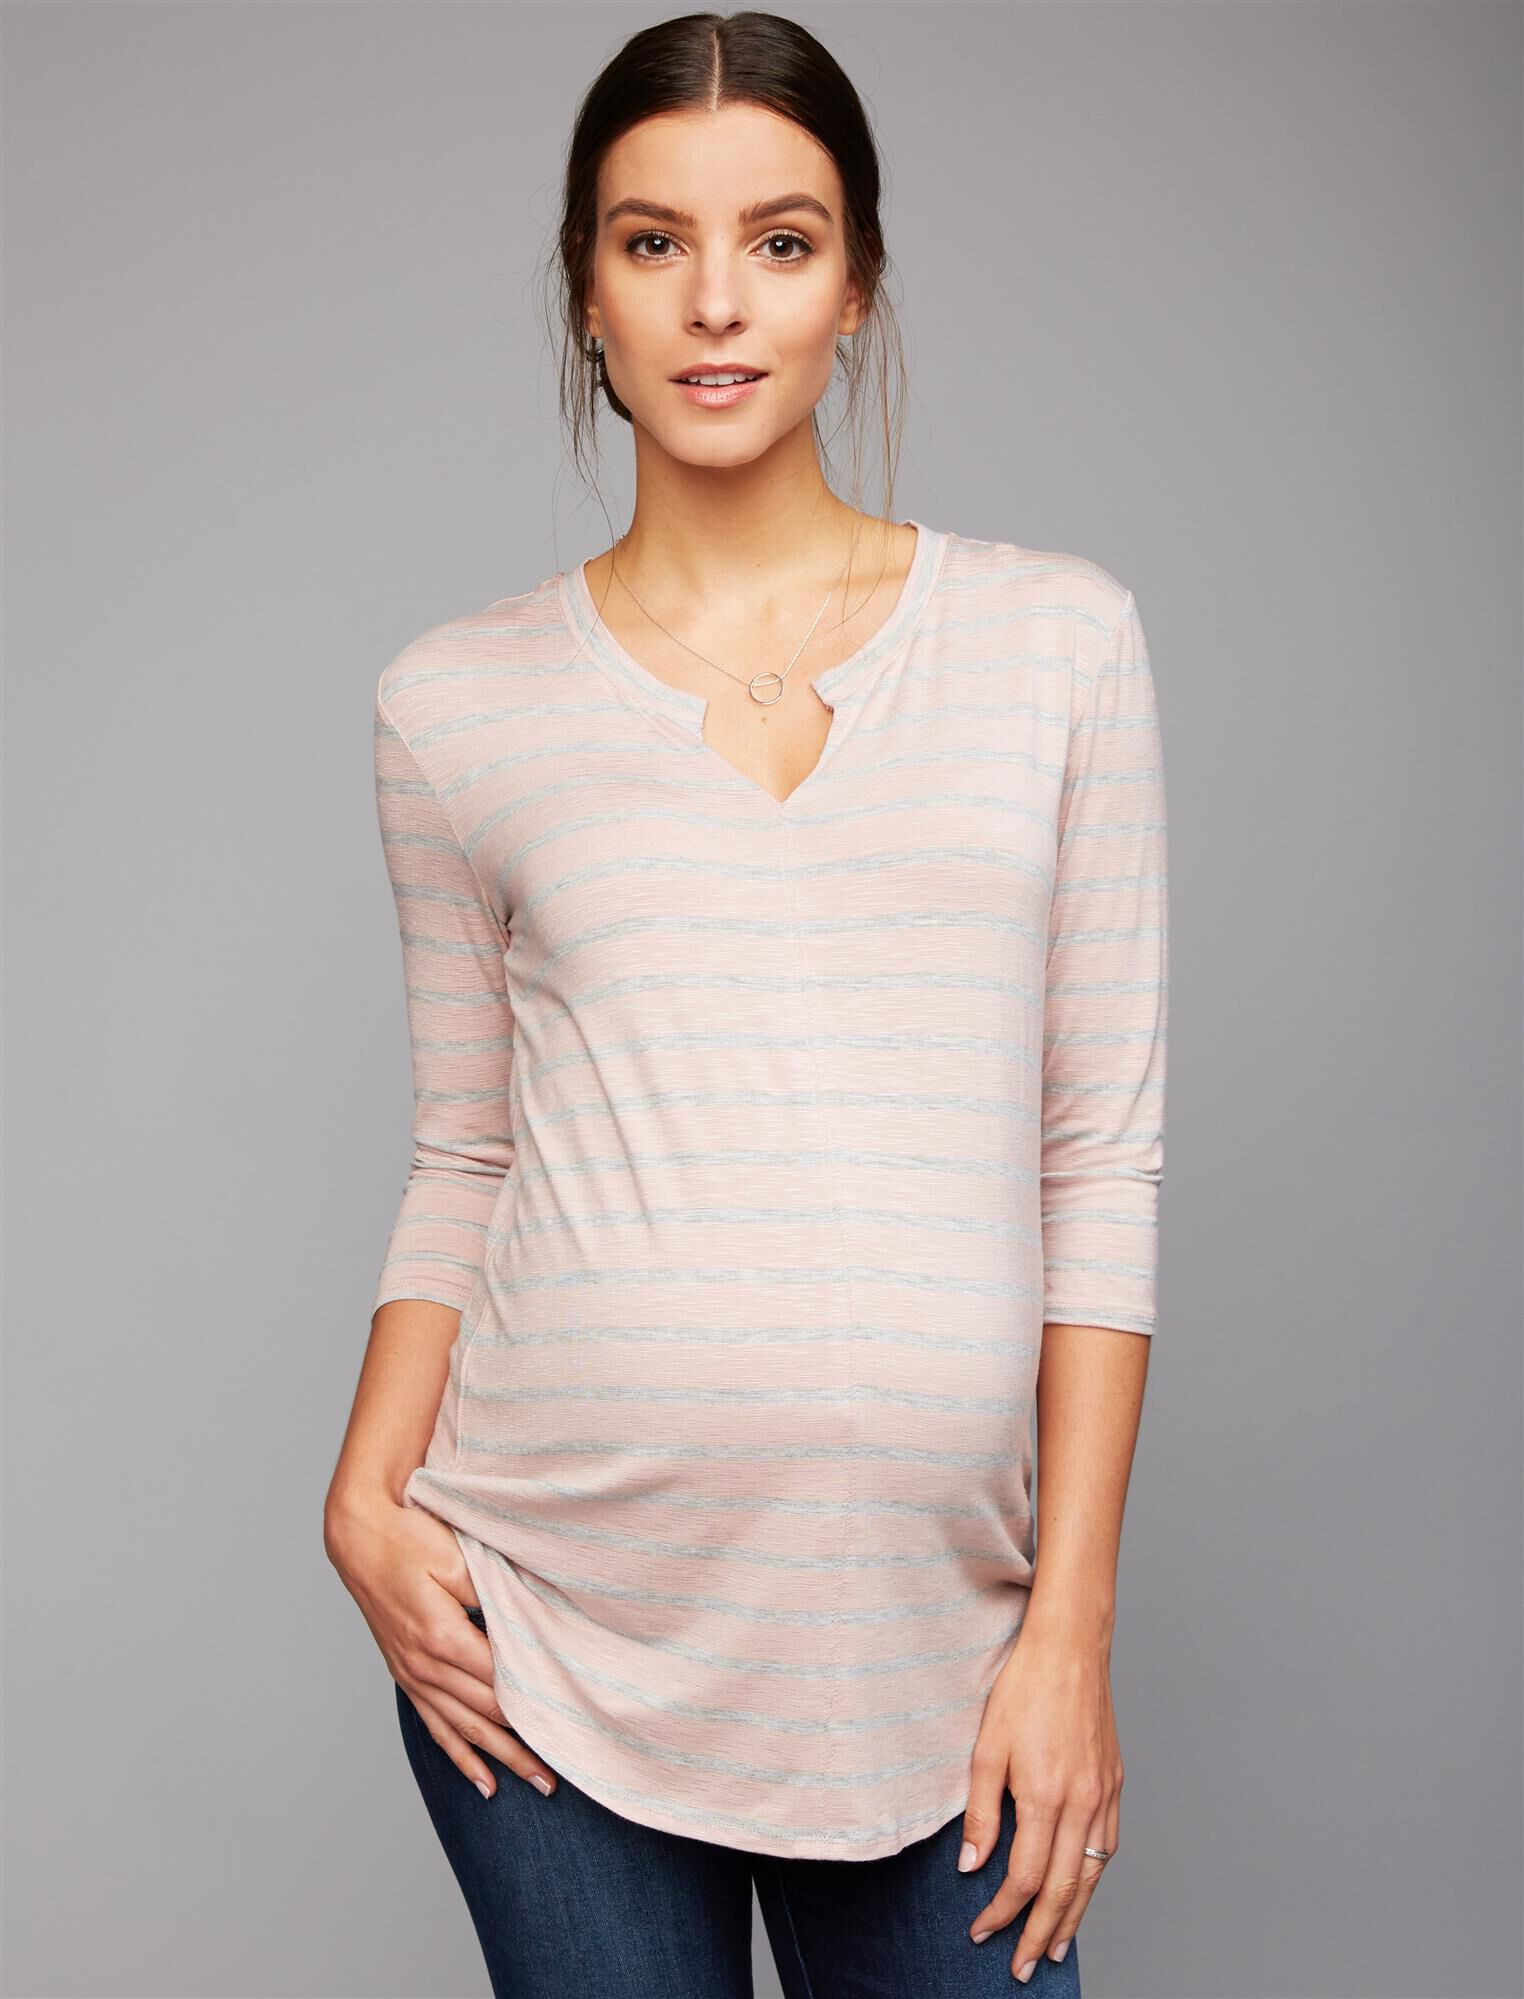 Relaxed Fit Maternity T Shirt